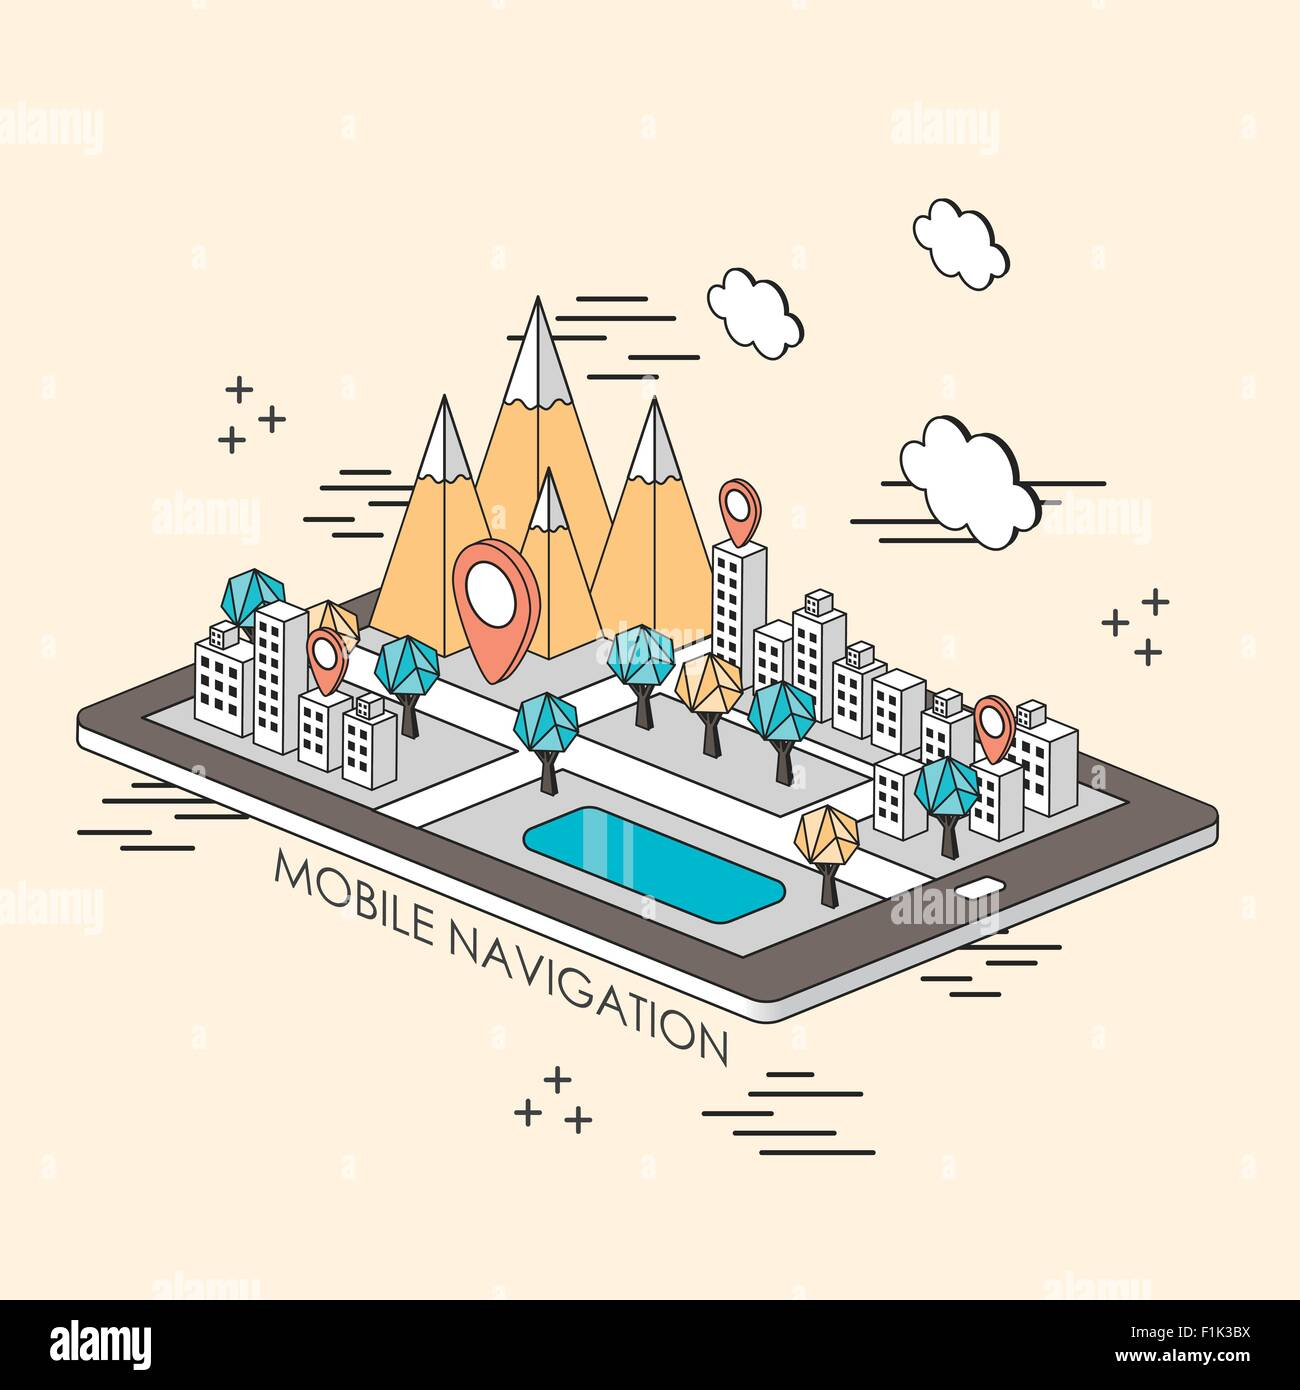 mobile navigation concept: city and mountain showing up from tablet in line style - Stock Vector